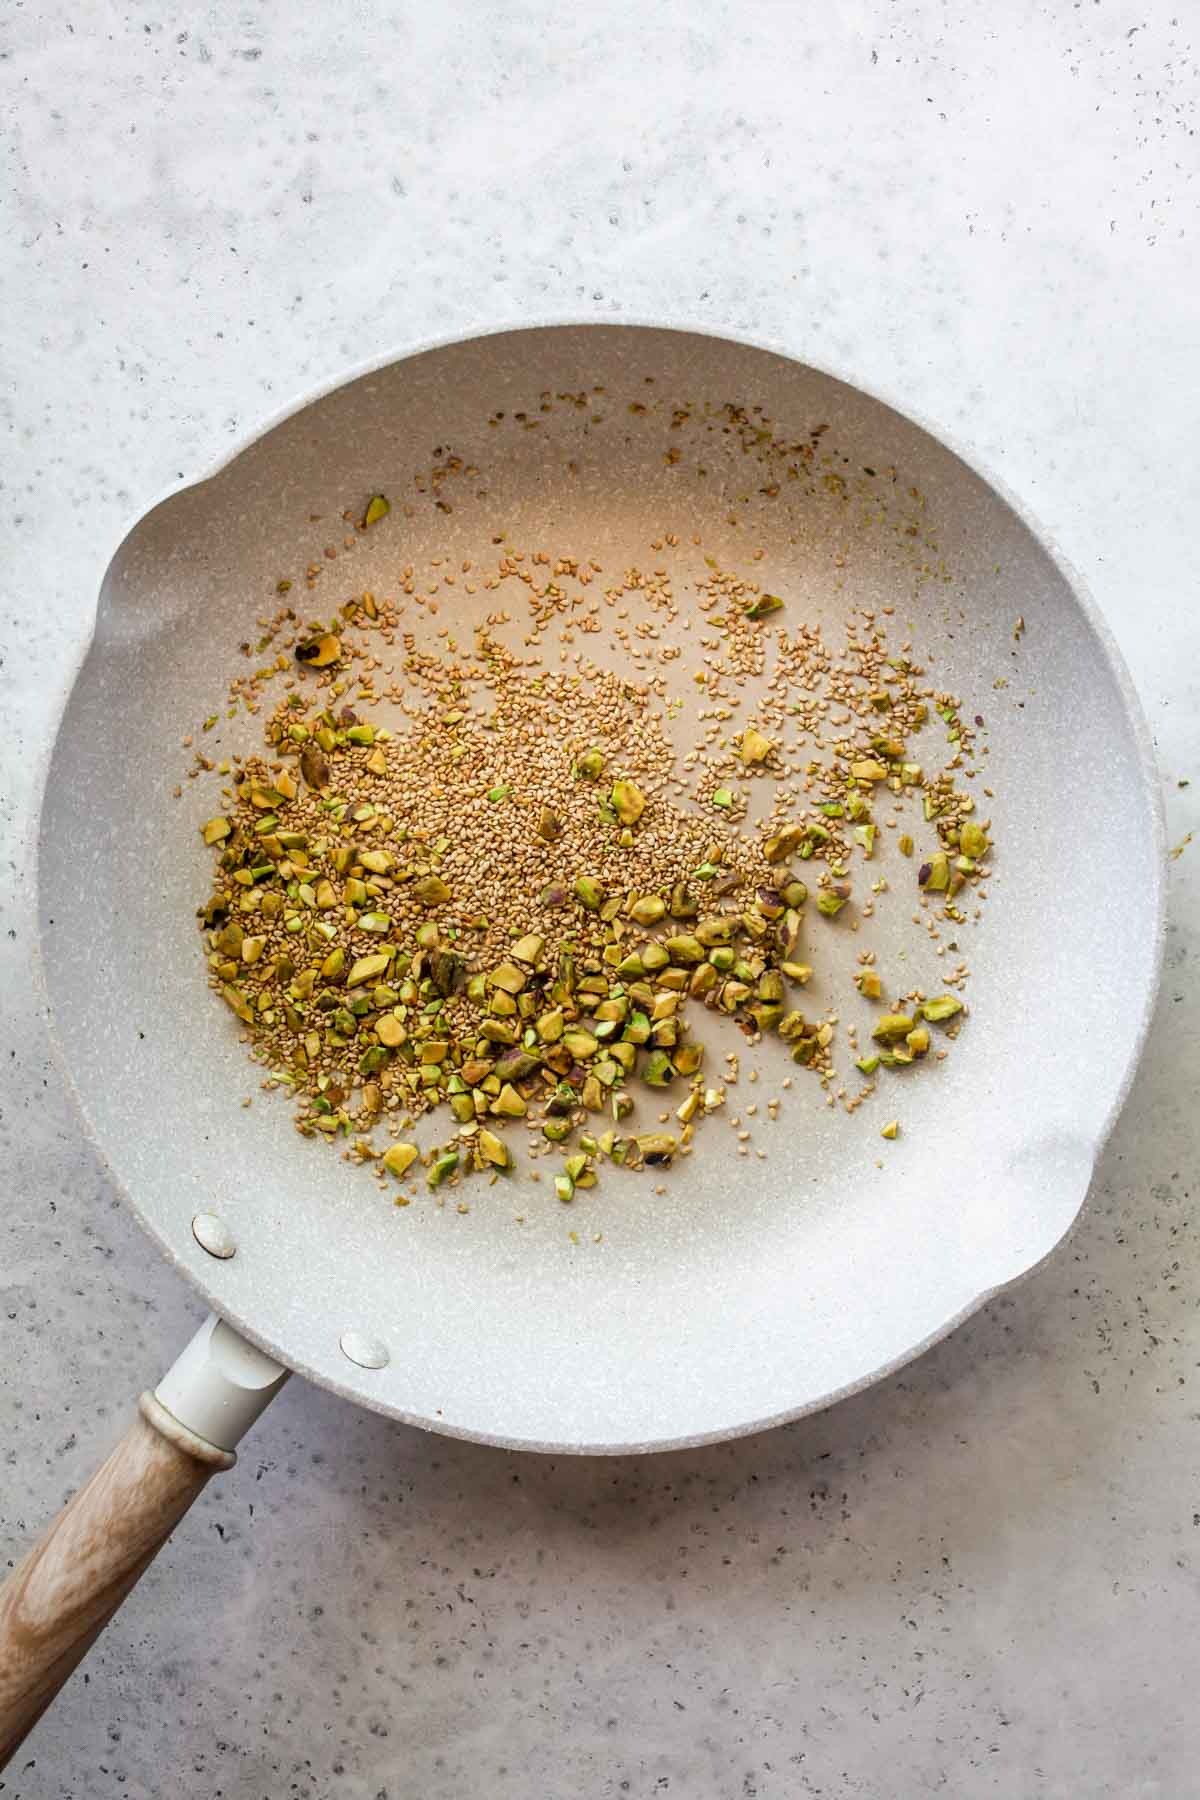 Pistachios and sesame seeds being toasted in a skillet